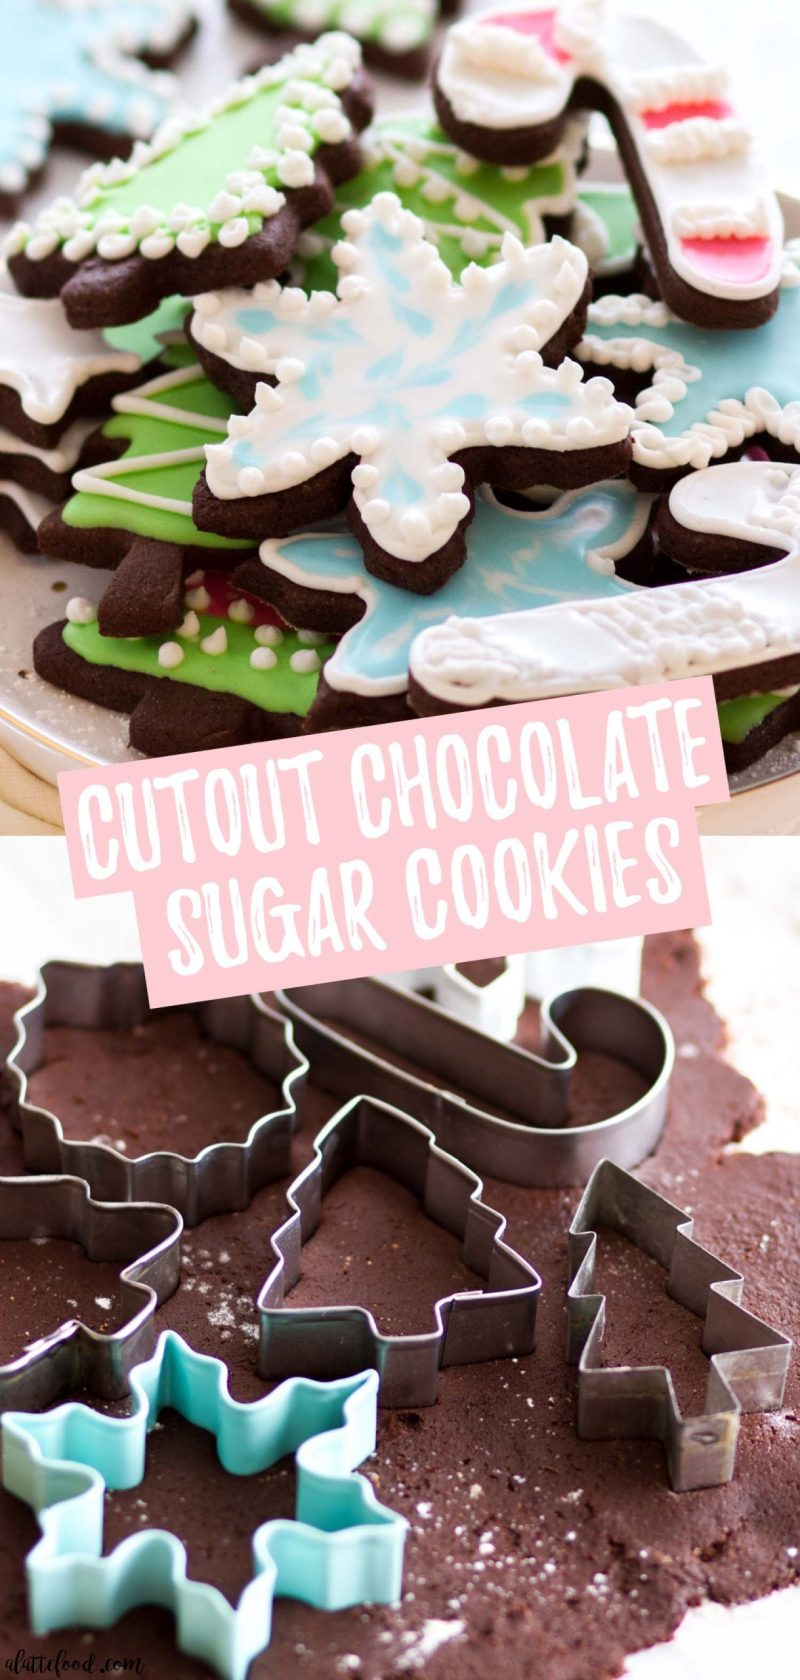 Cutout Chocolate Sugar Cookies with frosting collage